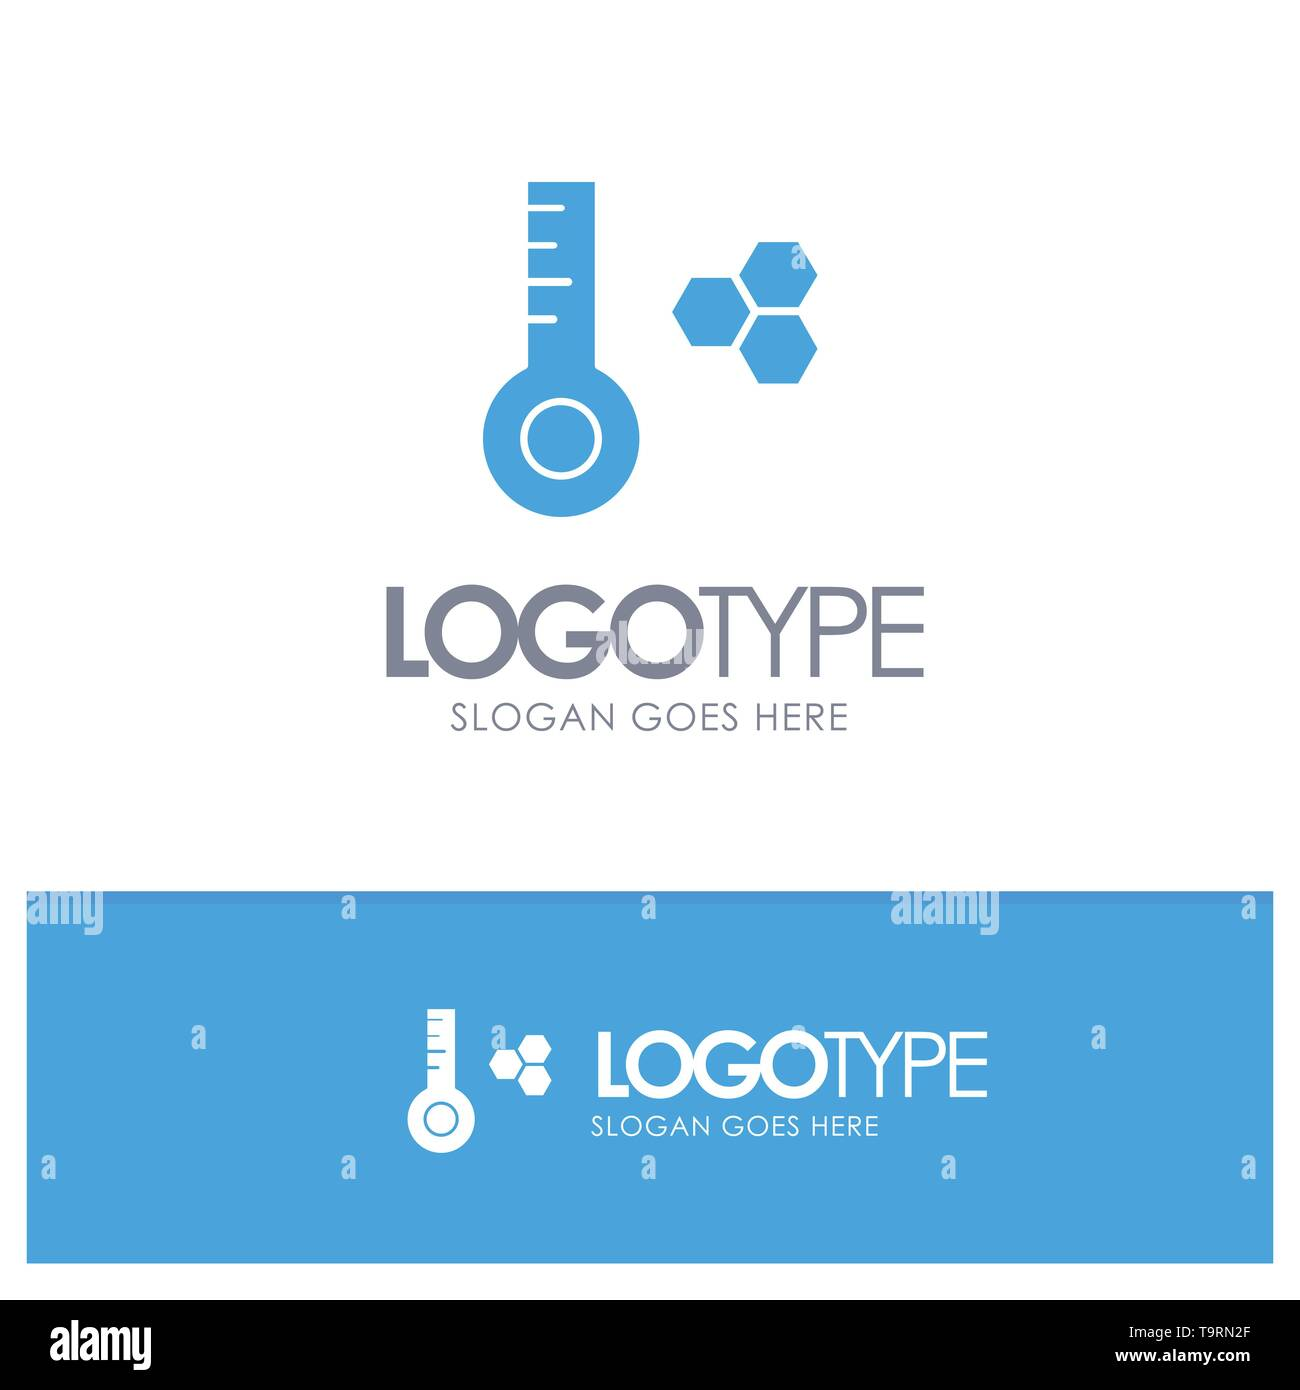 Temperature, Temperature Meter, Thermometer Blue Solid Logo with place for tagline - Stock Image